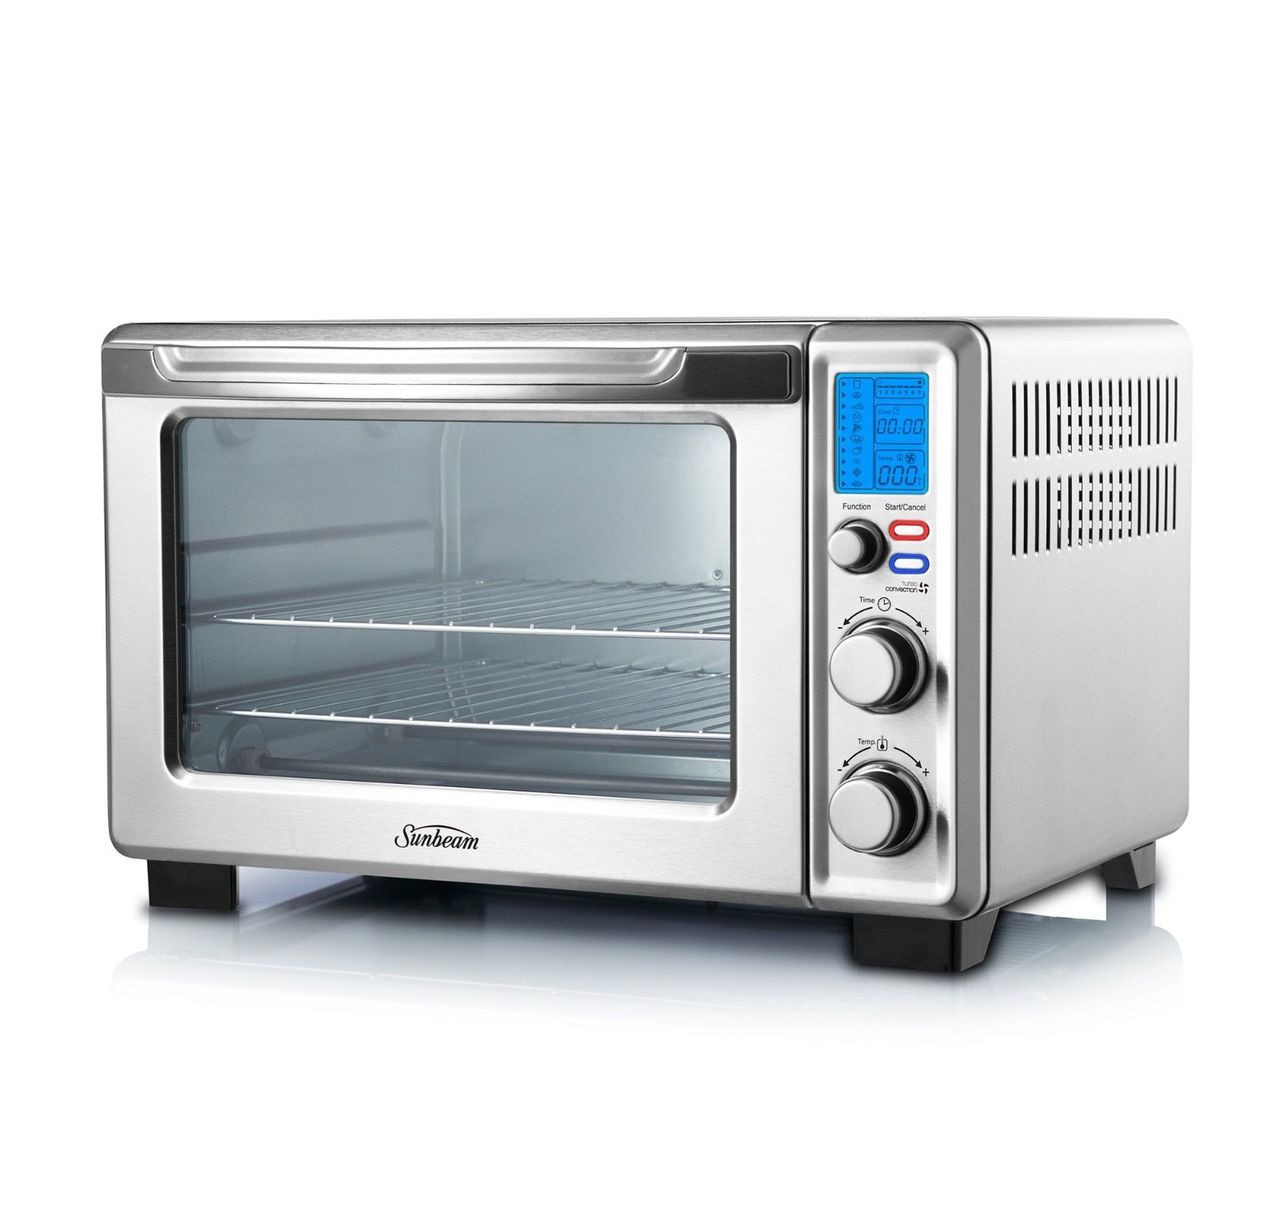 Sunbeam BT7100 Quick Start Oven 22L with 30cm Pizza Tray Included - HURRY LAST 2!